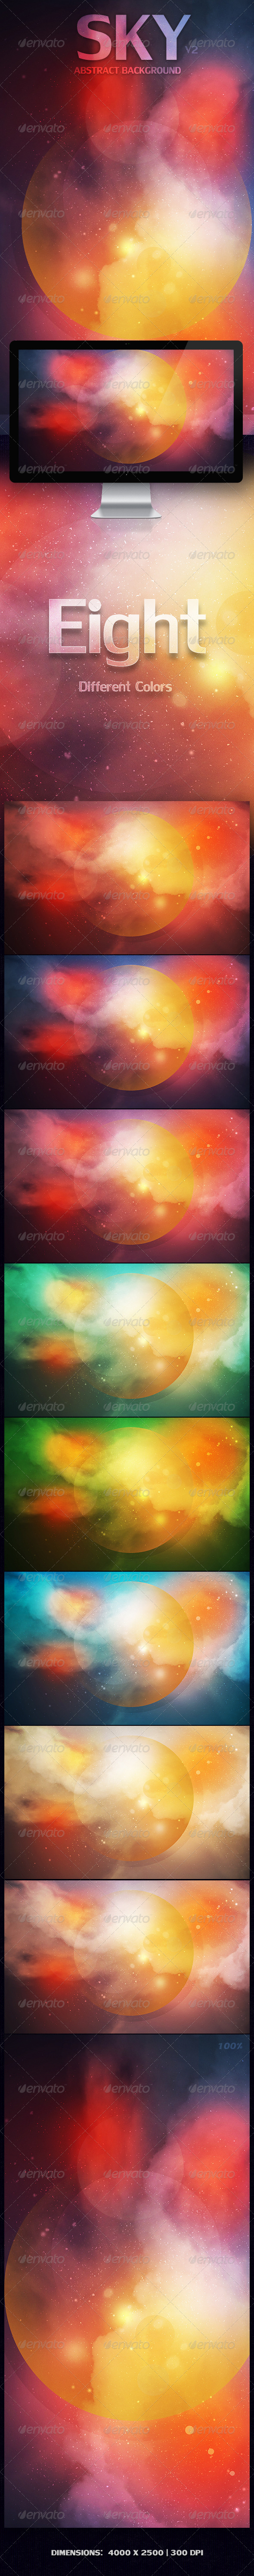 SKY Abstract Background  | V2 - Abstract Backgrounds